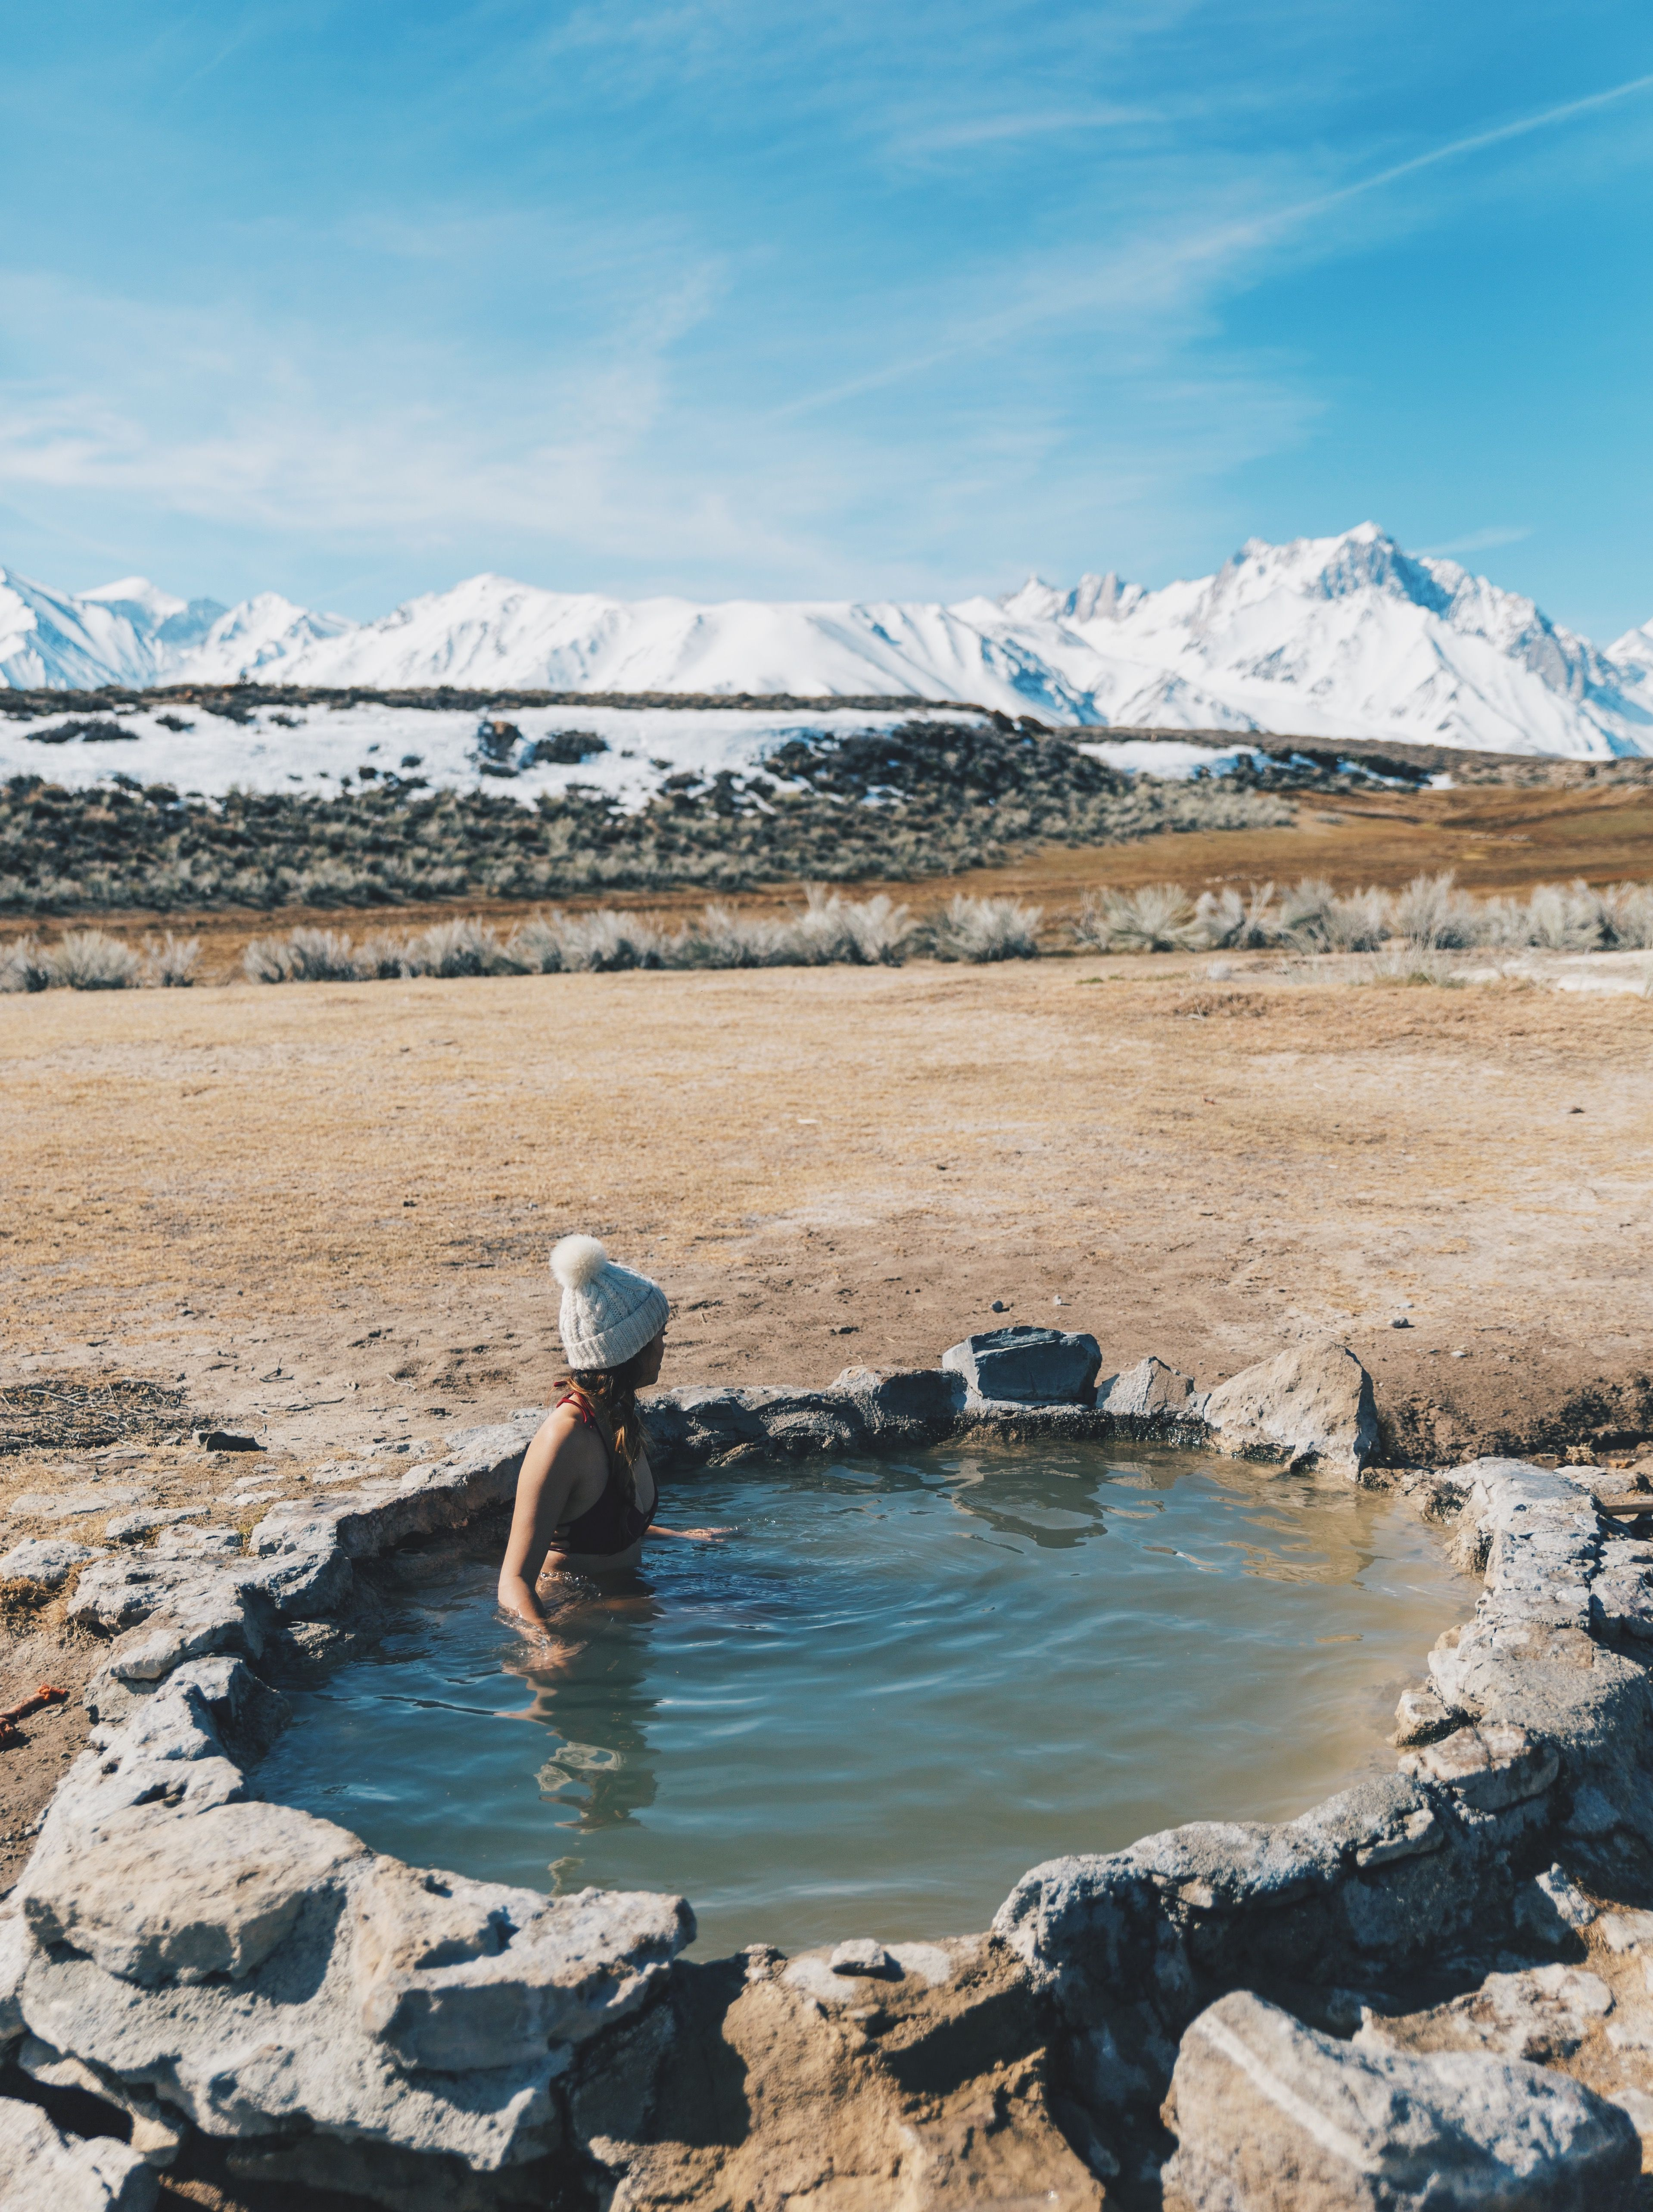 Finding Hot Springs In The Eastern Sierra Mountains